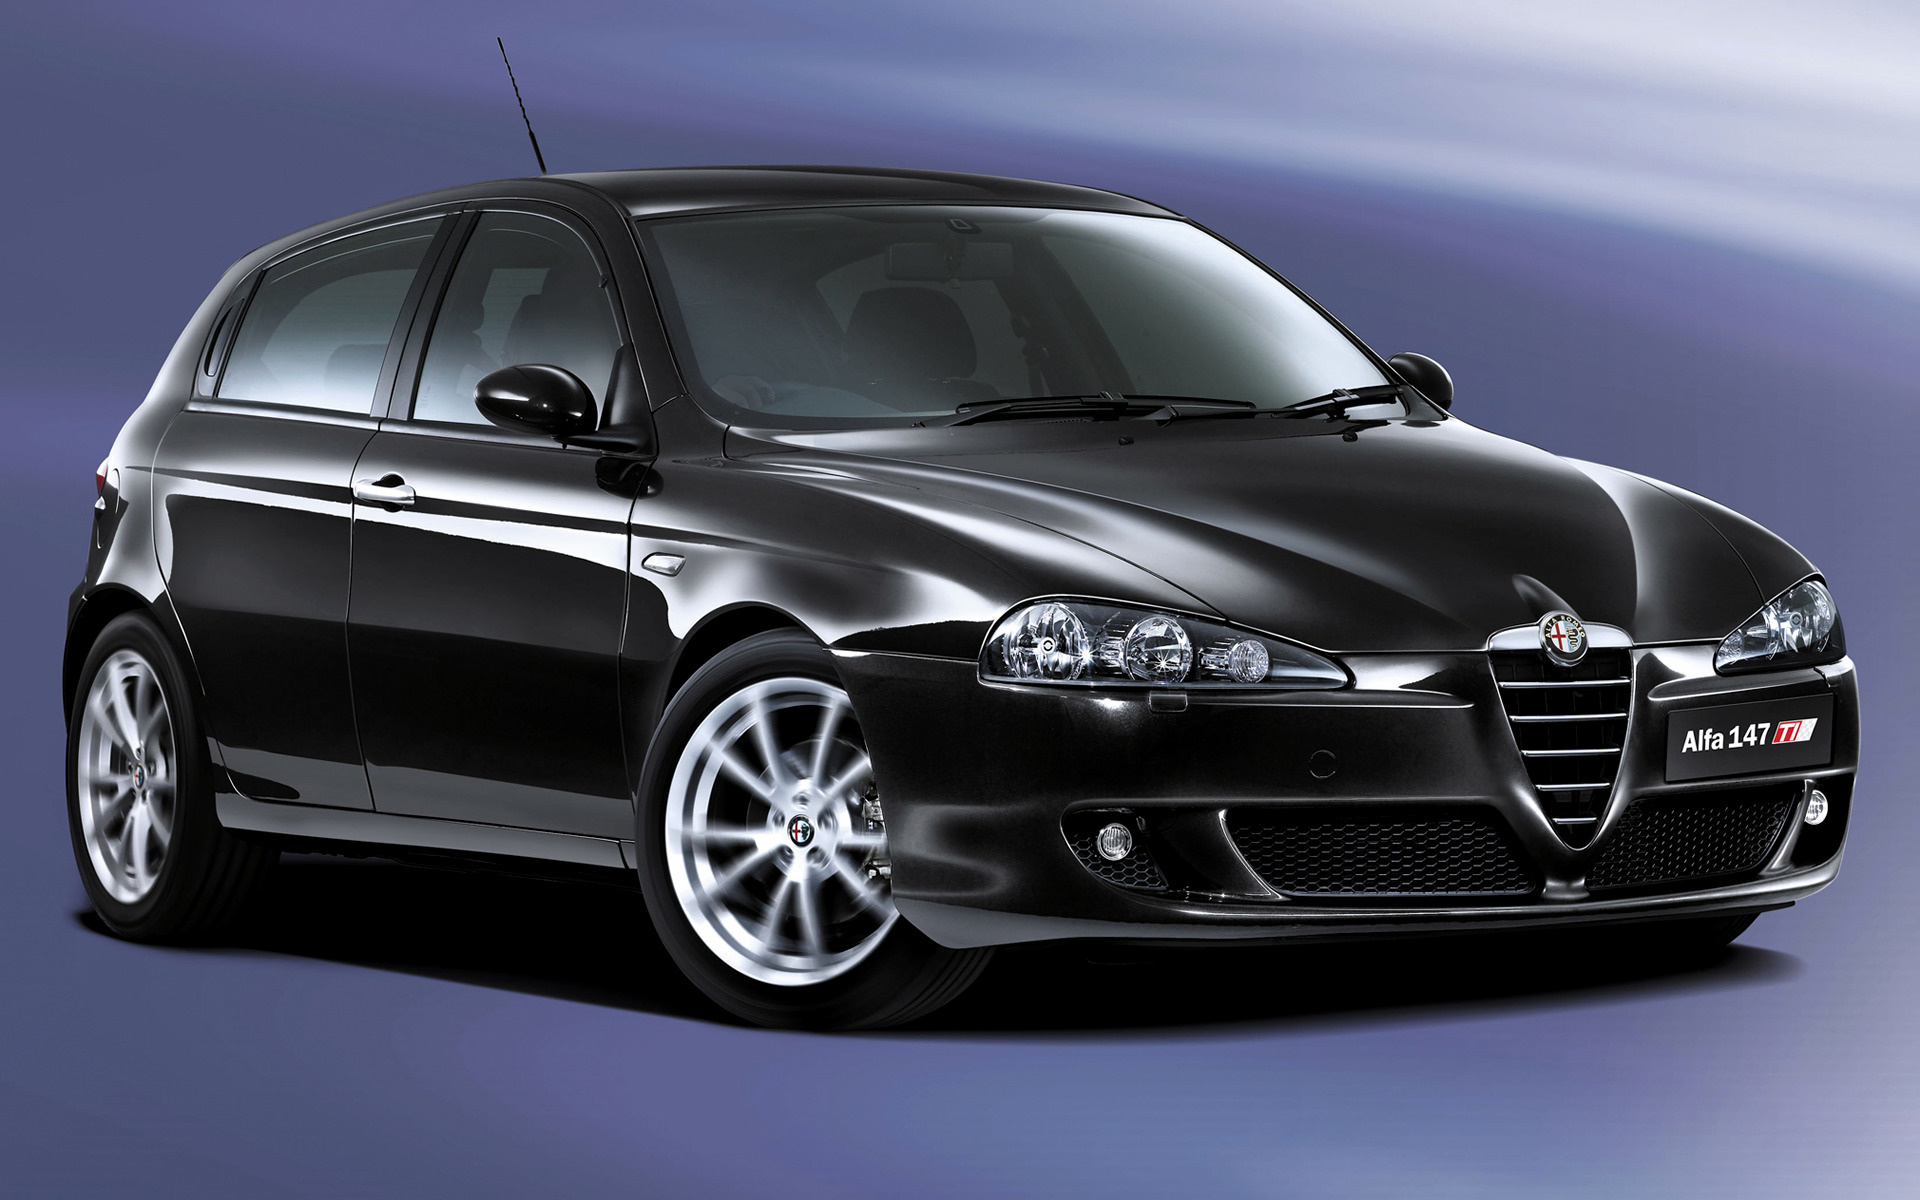 1920x1200 - Alfa Romeo 147 Wallpapers 11